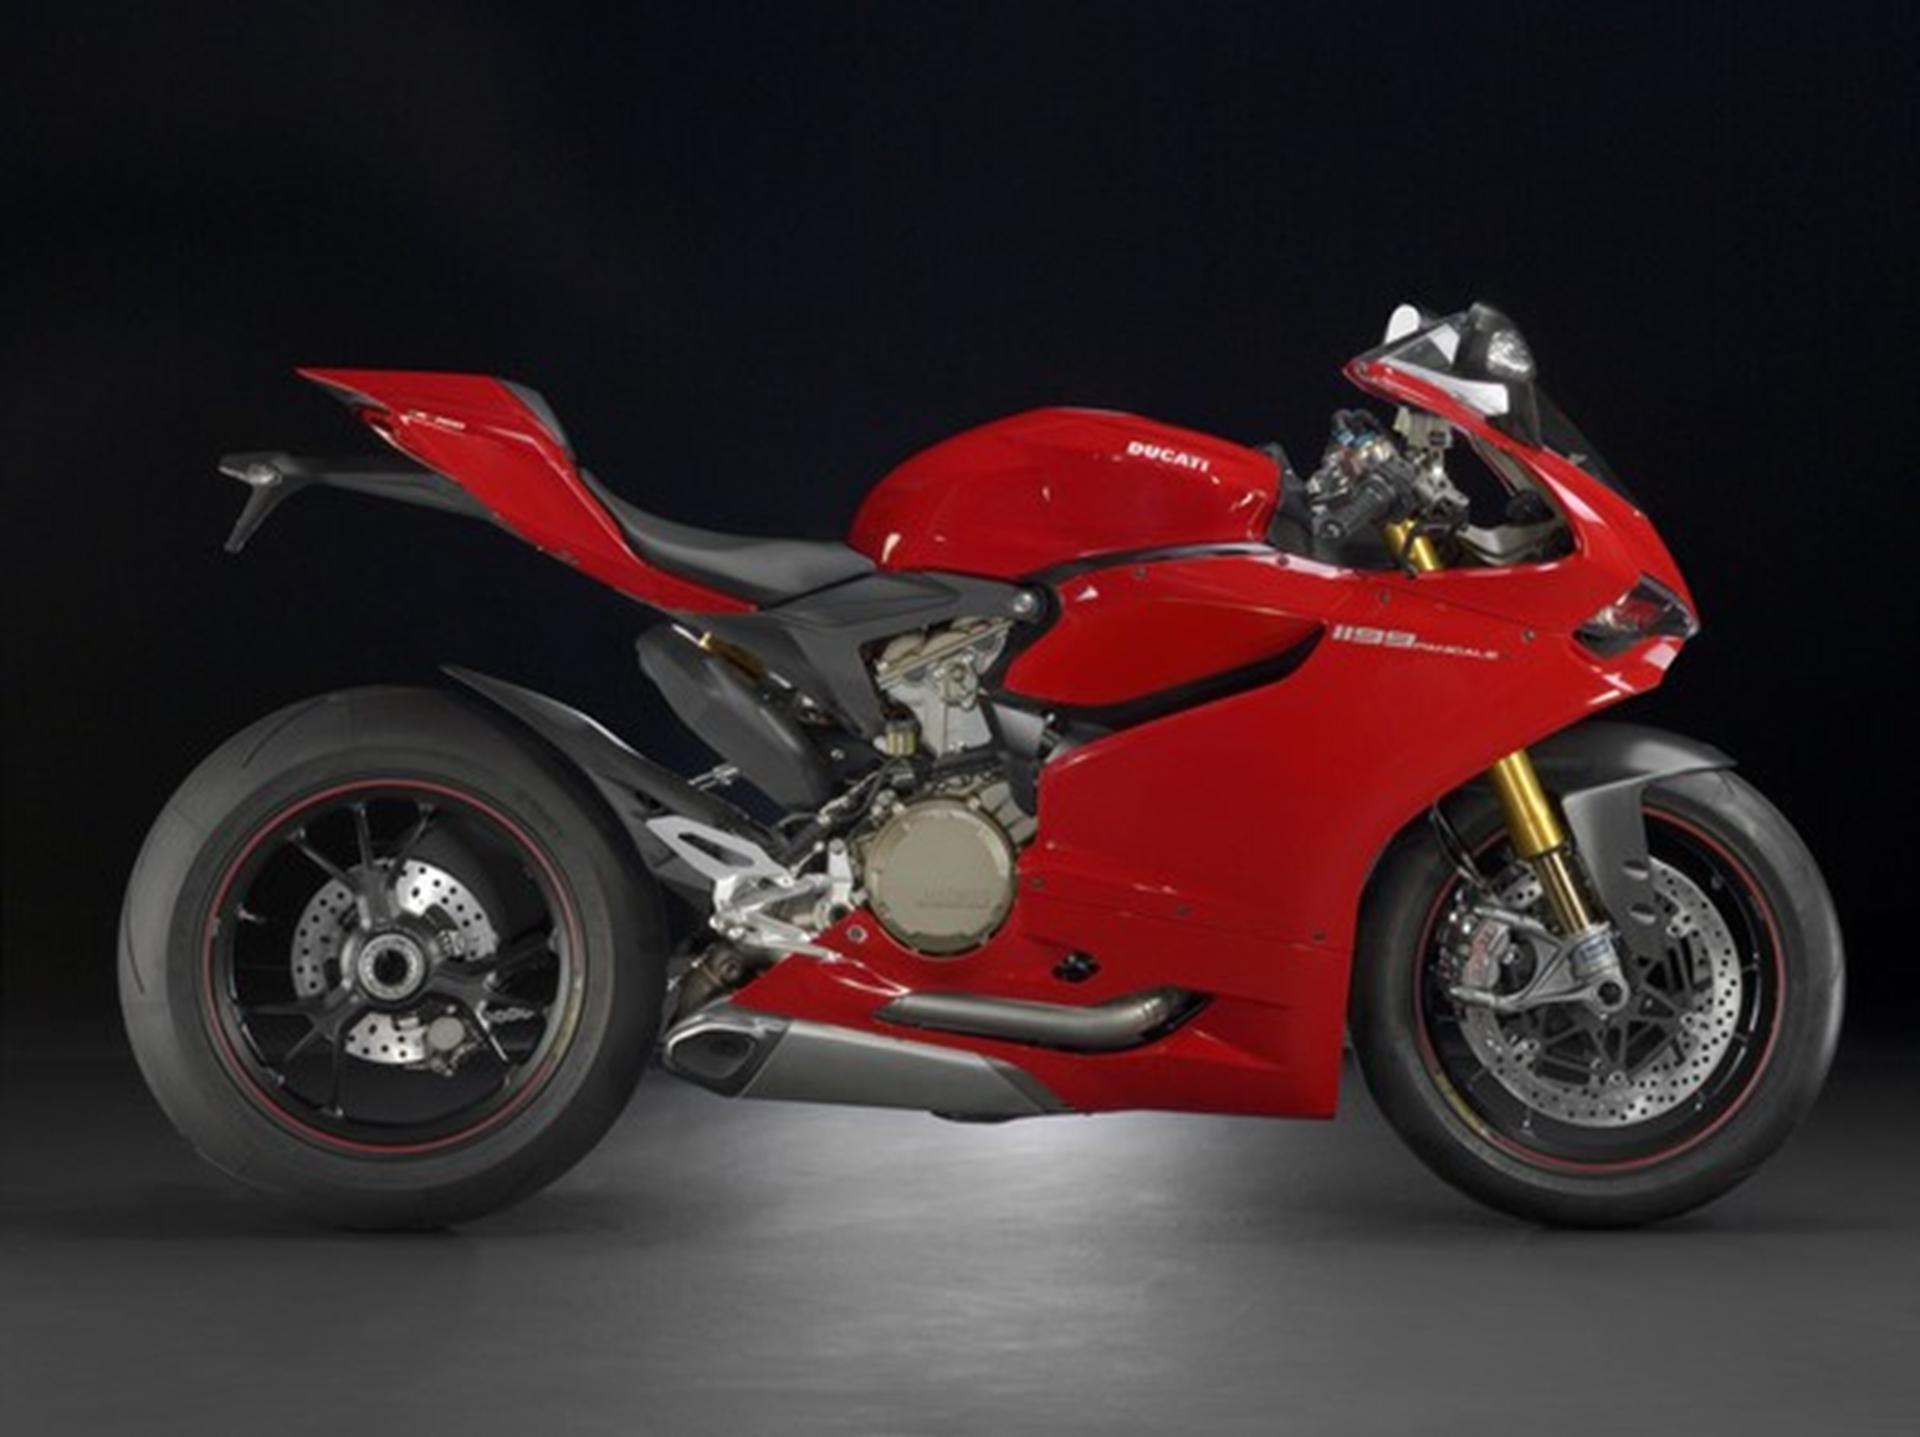 Panigales 1199